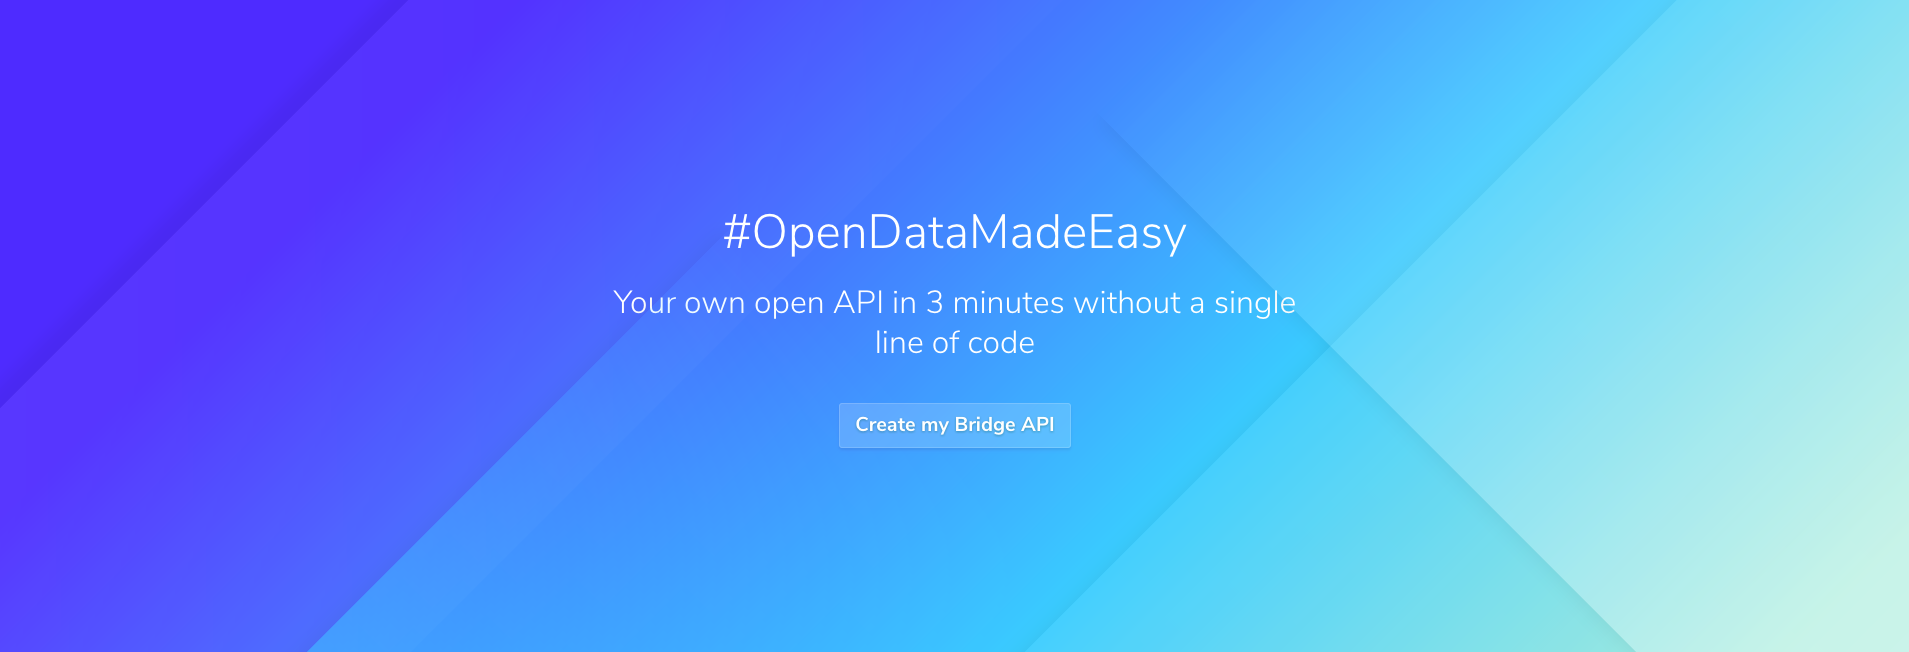 Create an open REST API in 2 minutes with Bridge [no code]